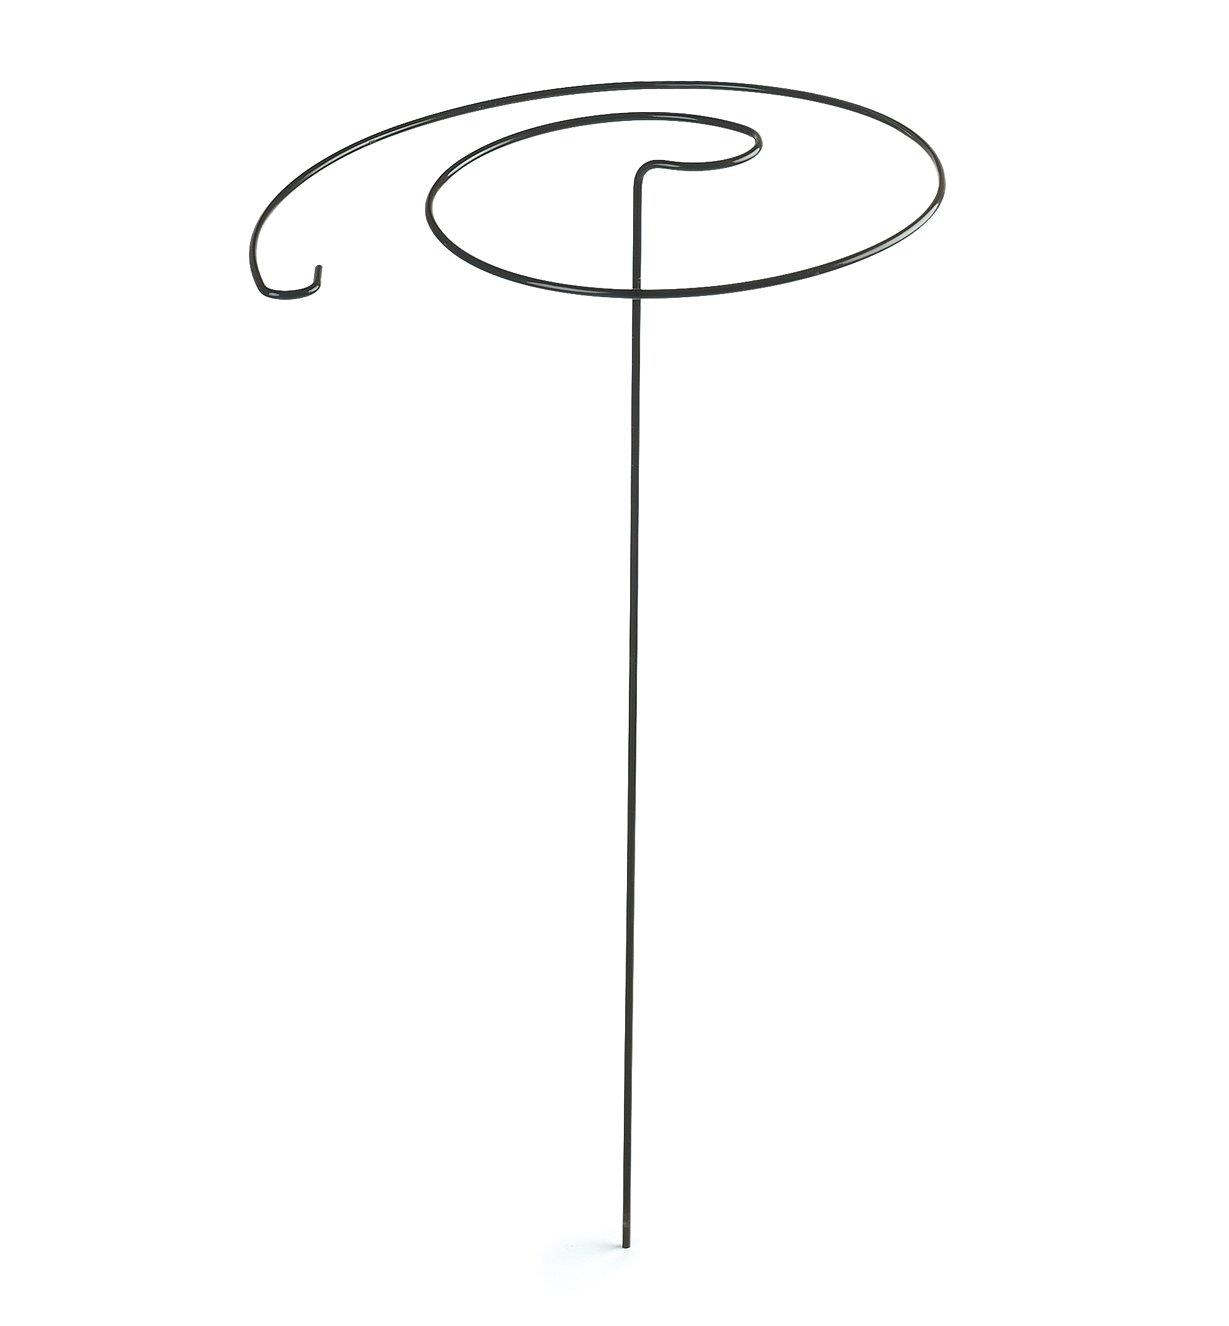 PL136 - Spiral Plant Supports, set of 3